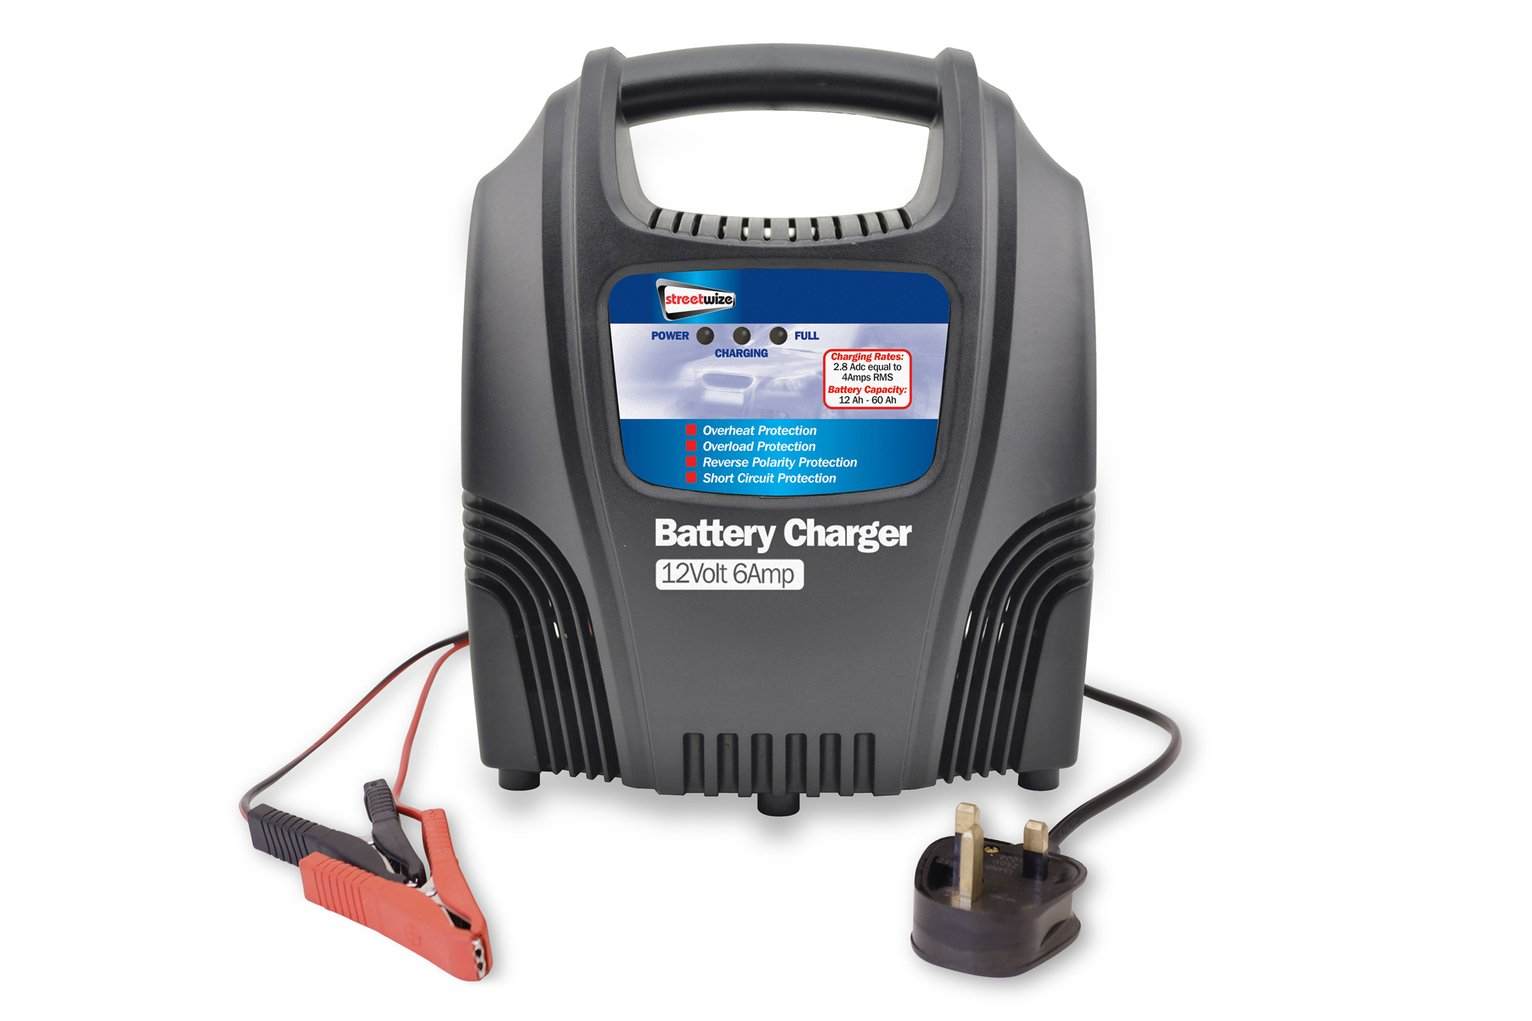 Streetwize 6 Amp 12V Compact Battery Charger